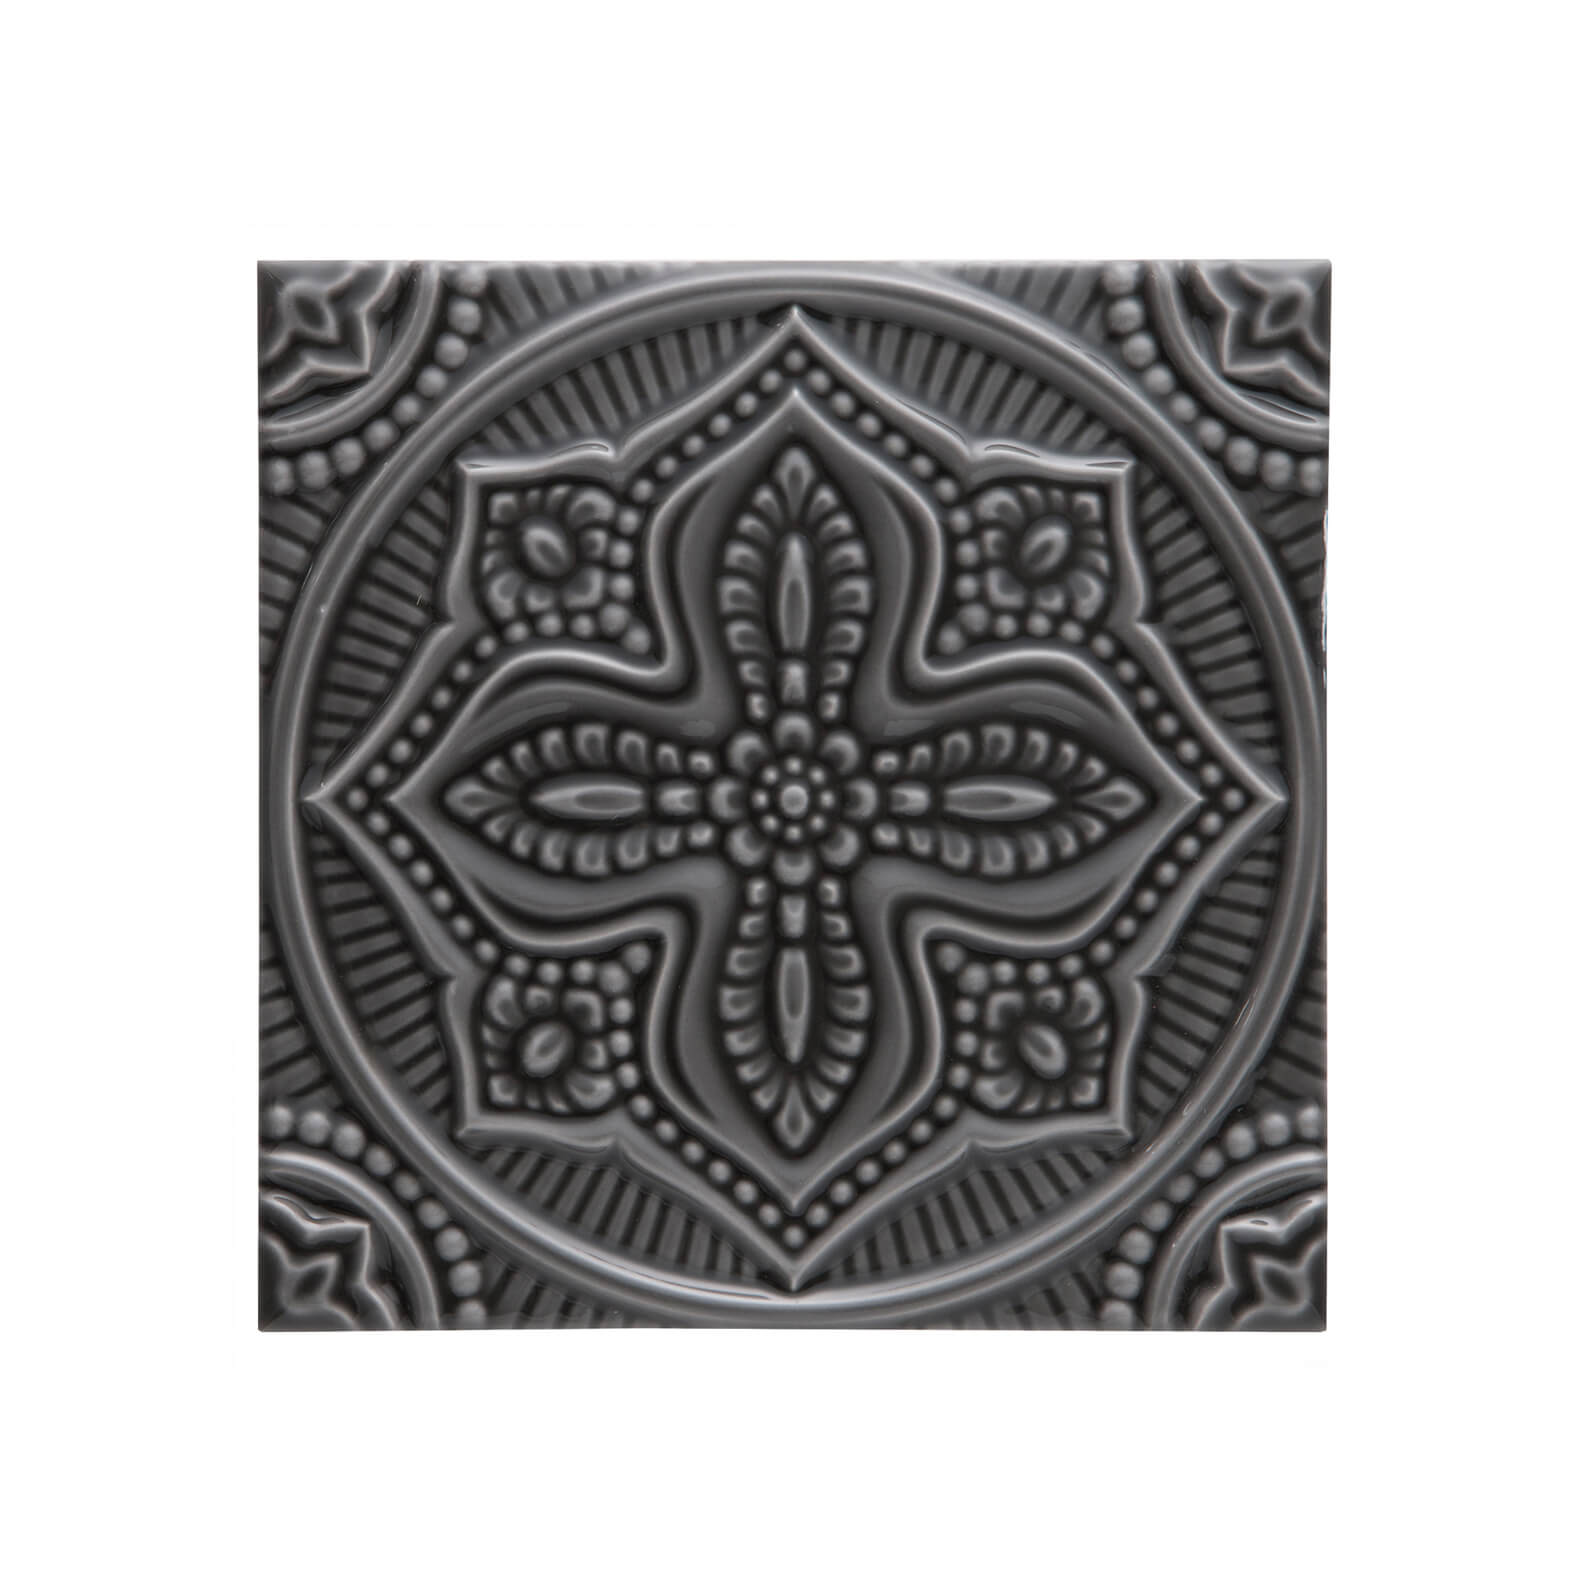 ADST4072 - RELIEVE MANDALA PLANET - 14.8 cm X 14.8 cm